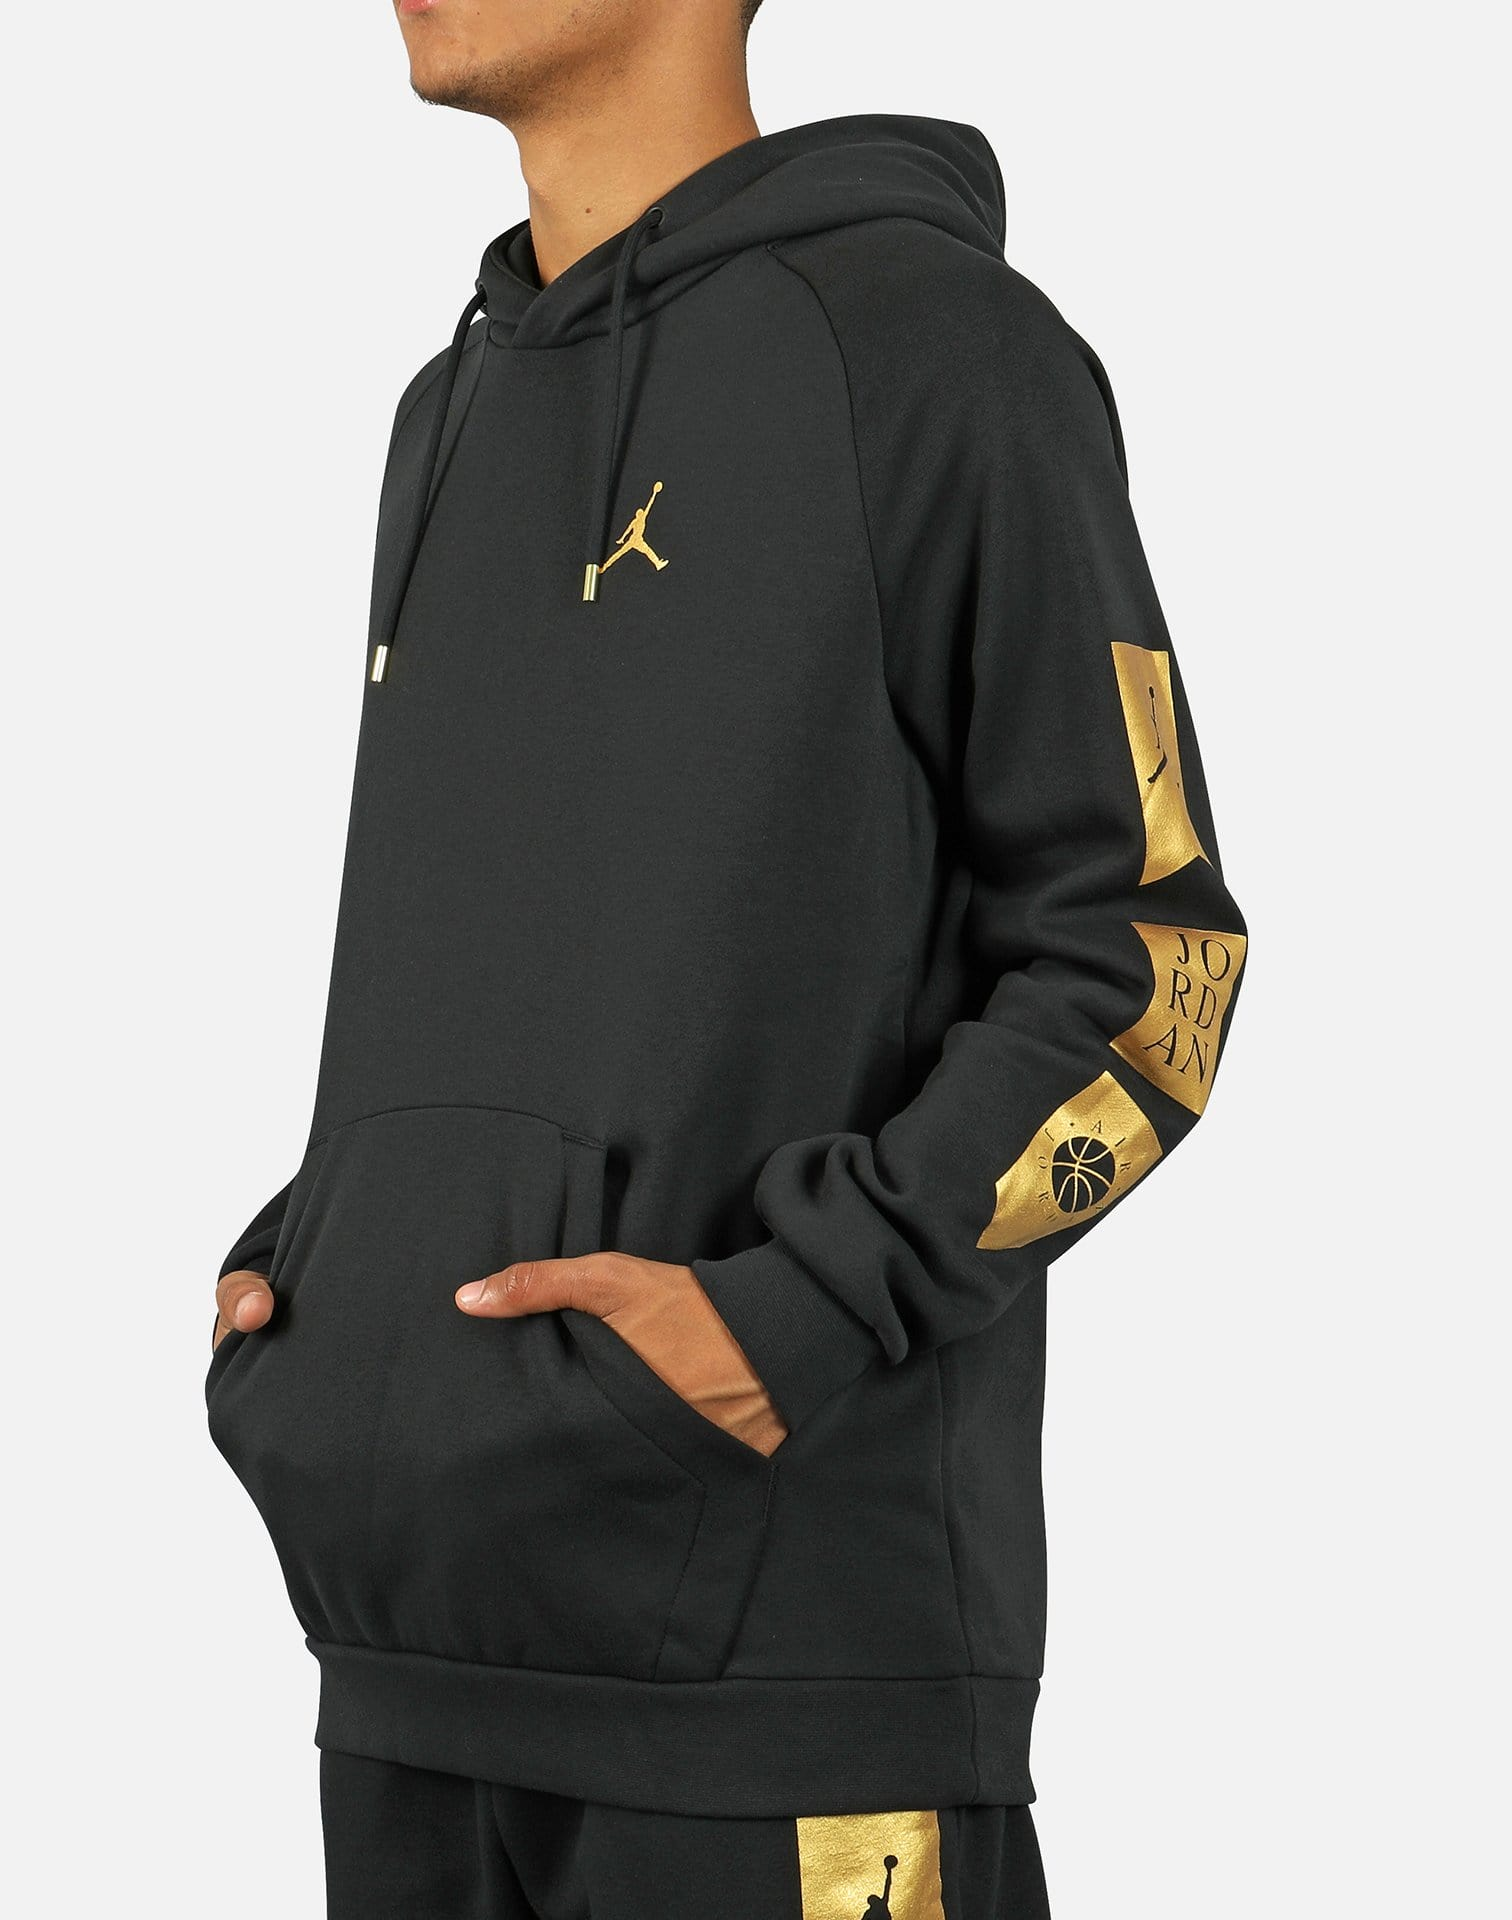 Jordan Men's MJ Remastered Hoodie